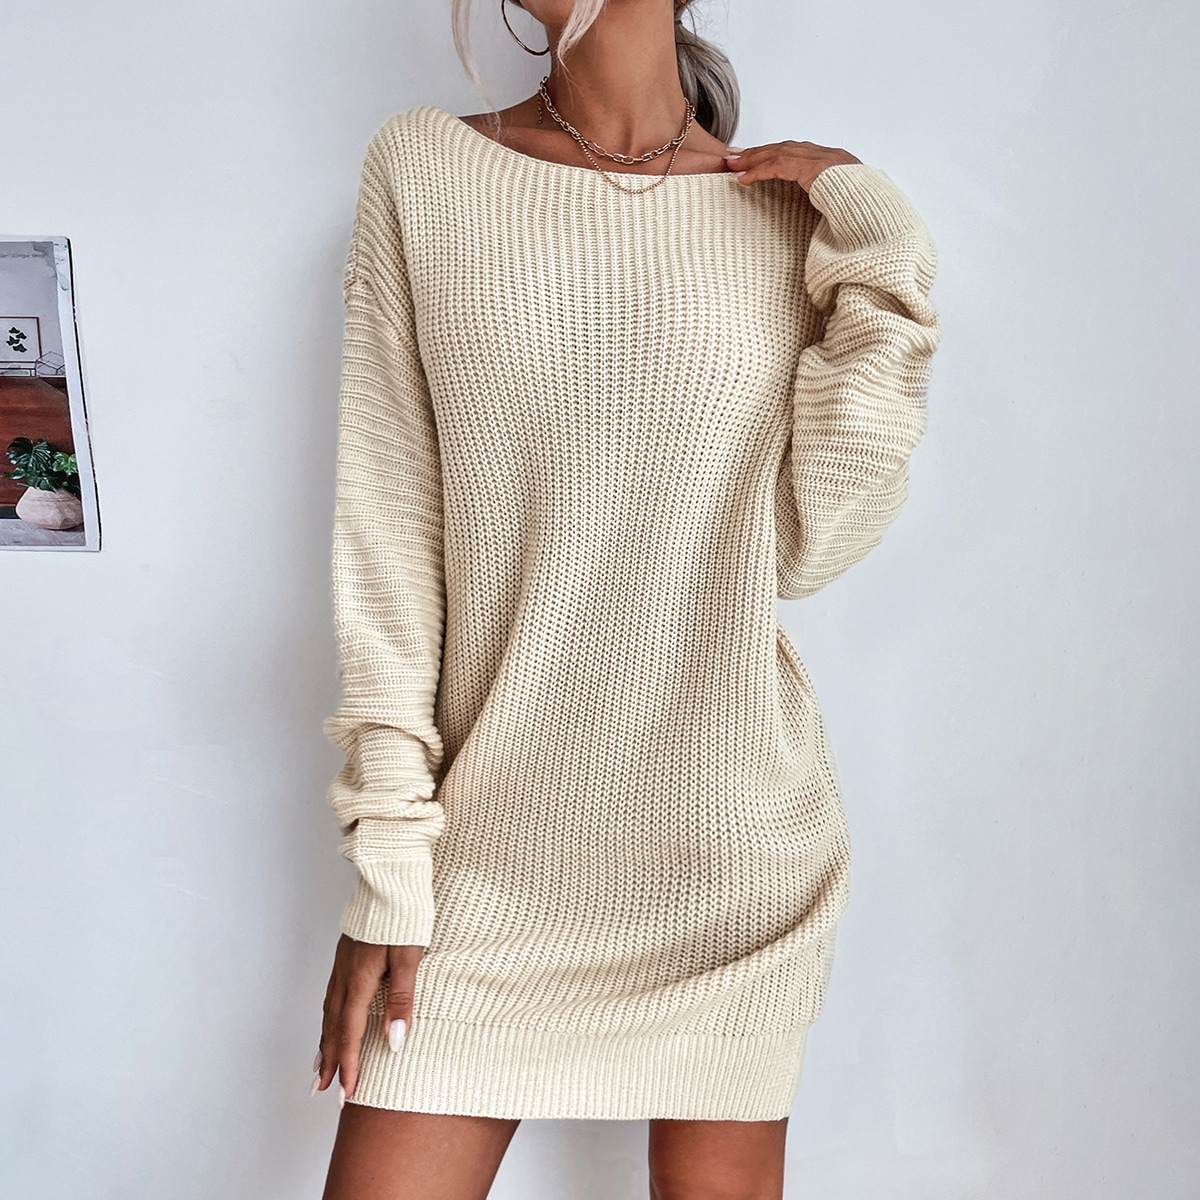 Boat Neck Drop Shoulder Sweater Dress Without Belt, SHEIN  - buy with discount